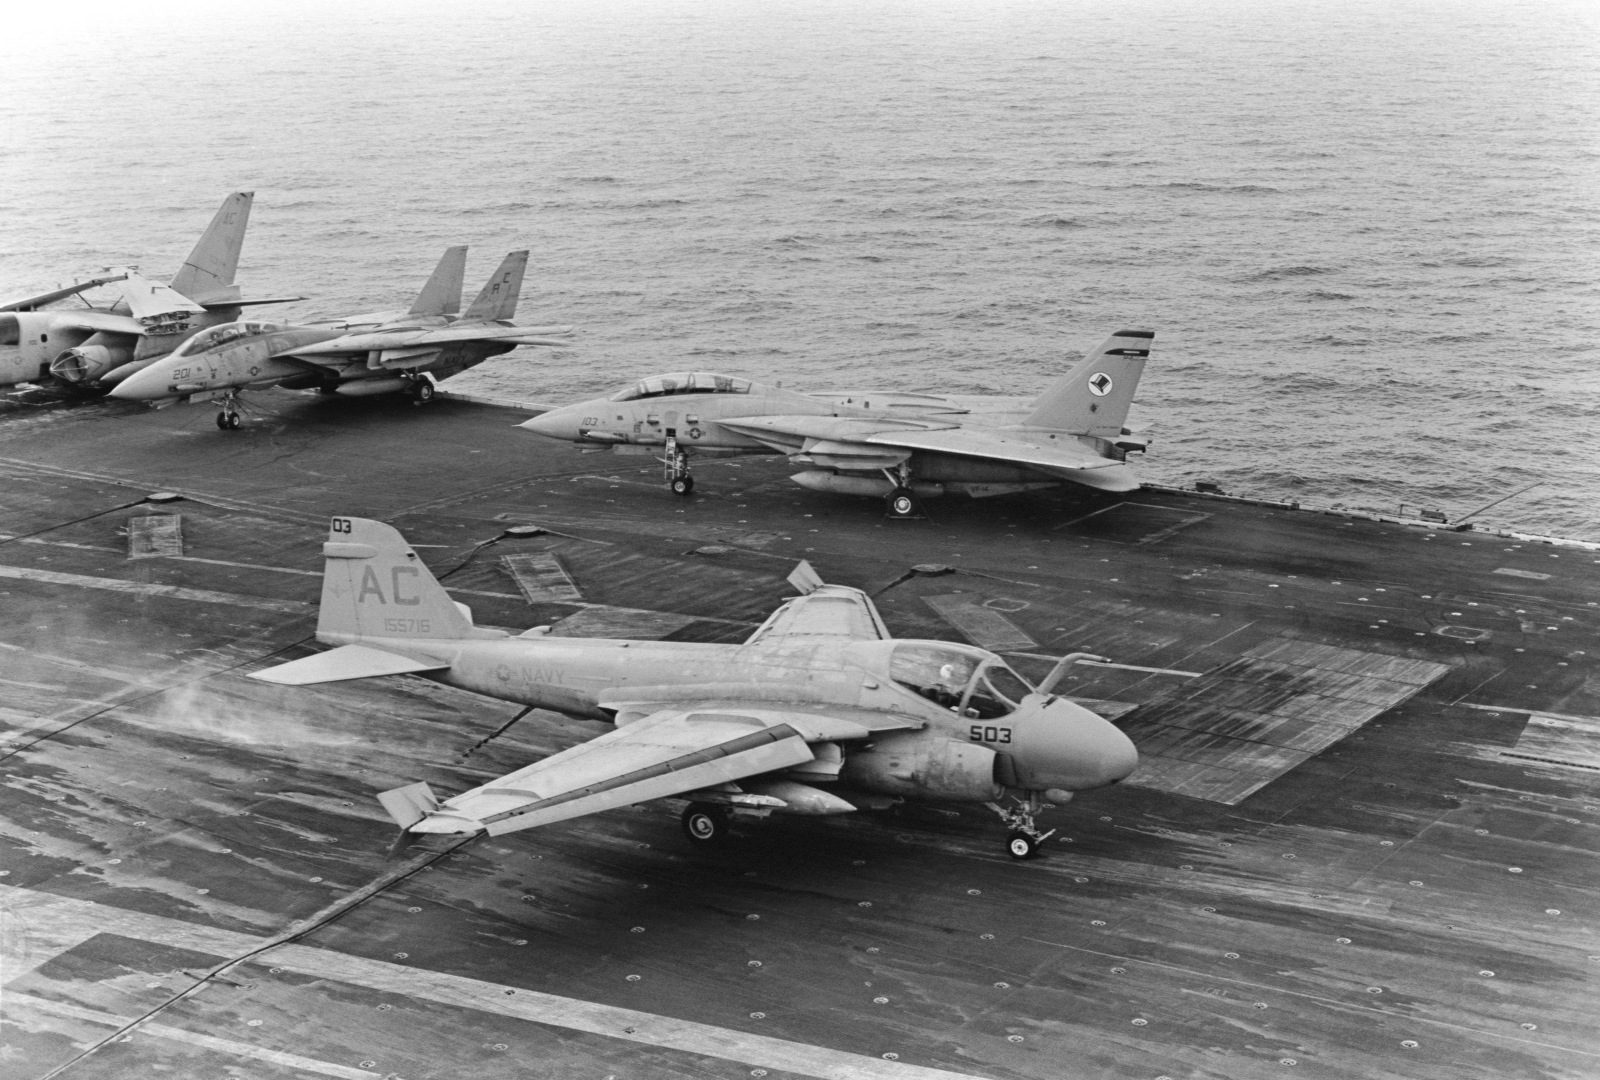 An A-6E Intruder aircraft lands aboard the aircraft carrier USS JOHN F. KENNEDY (CV 67) during NATO Exercise DISPLAY DETERMINATION '86. Several F-14A Tomcat aircraft are parked on the flight deck in the background